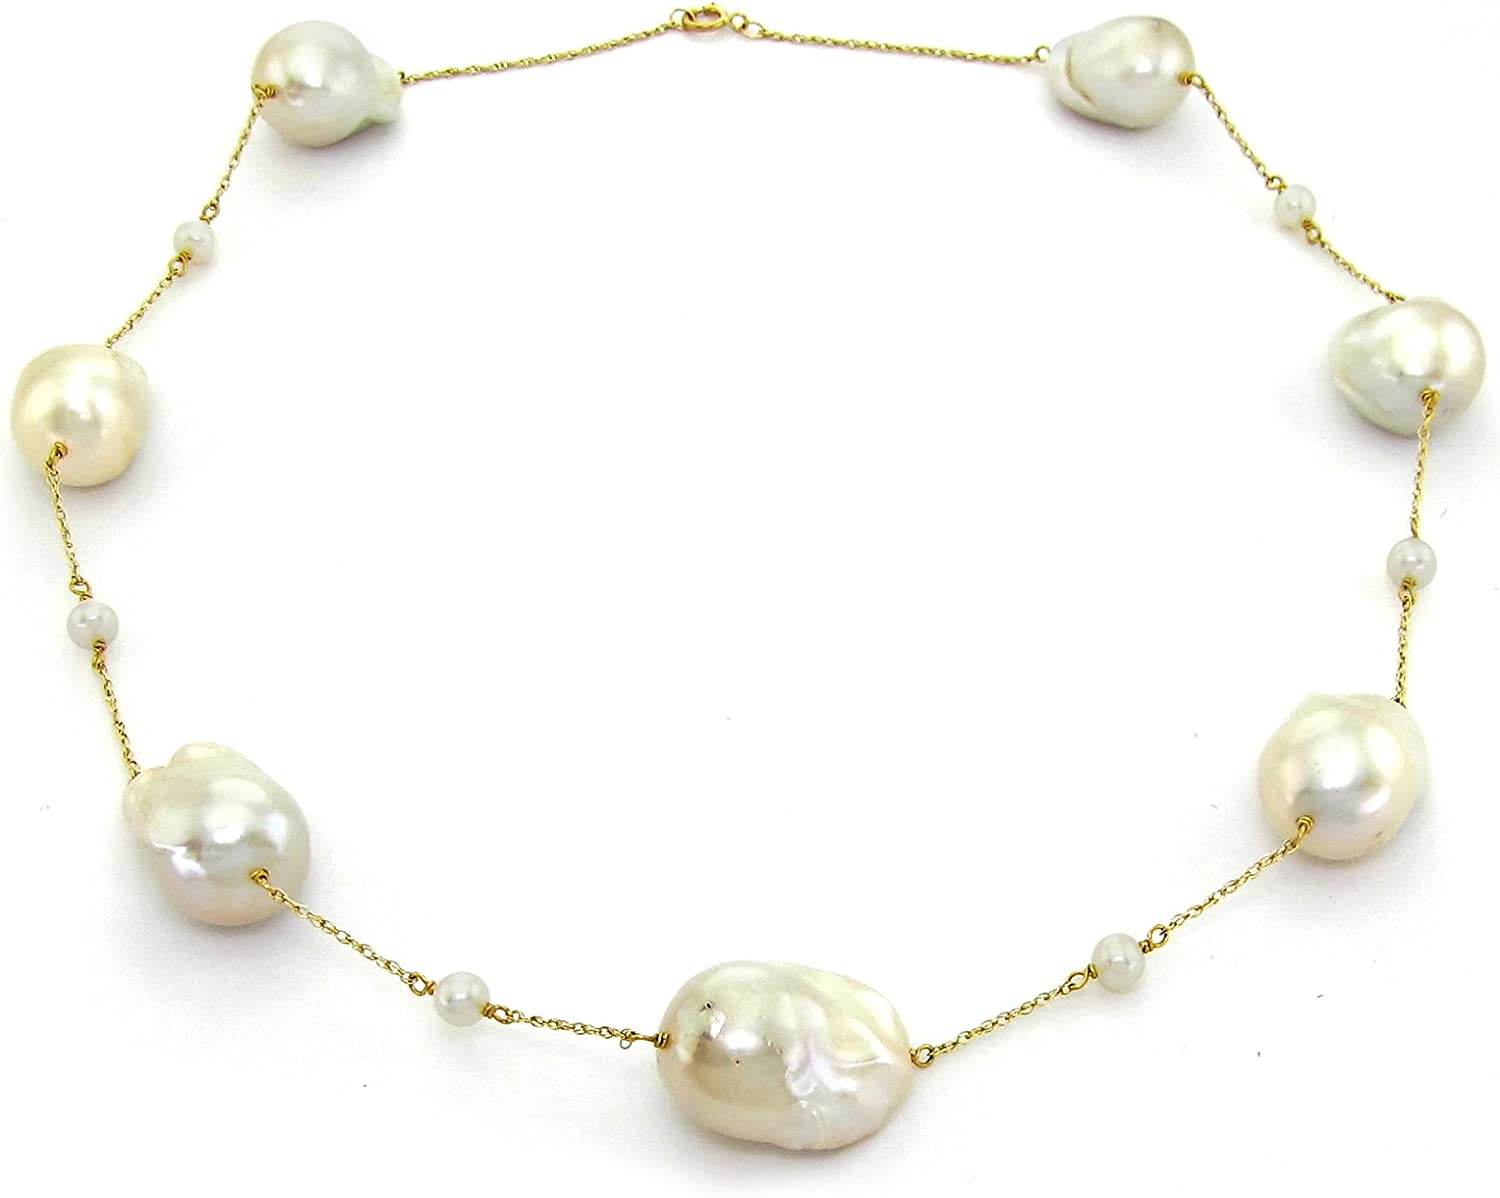 pearl necklace elegant necklace 14k gold 14k Yellow Gold Diamond Cut Freshwater Cultured Pearl Station Necklace cultured pearl